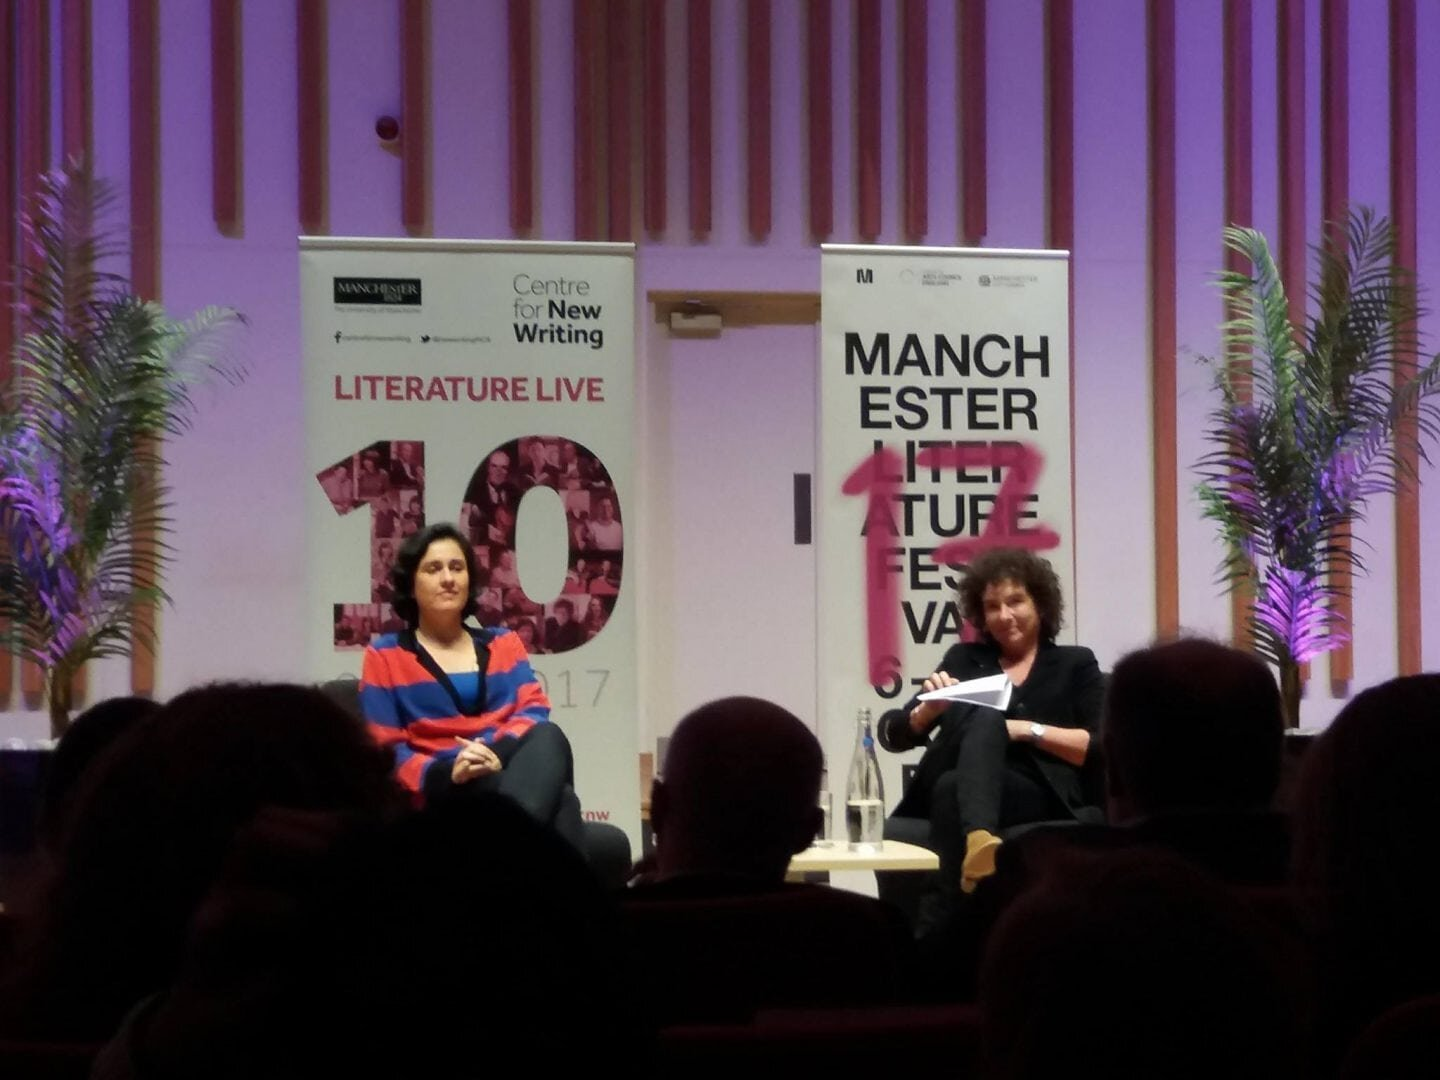 Kamila Shamsie in conversation with Jeanette Winterson | The mancunion -